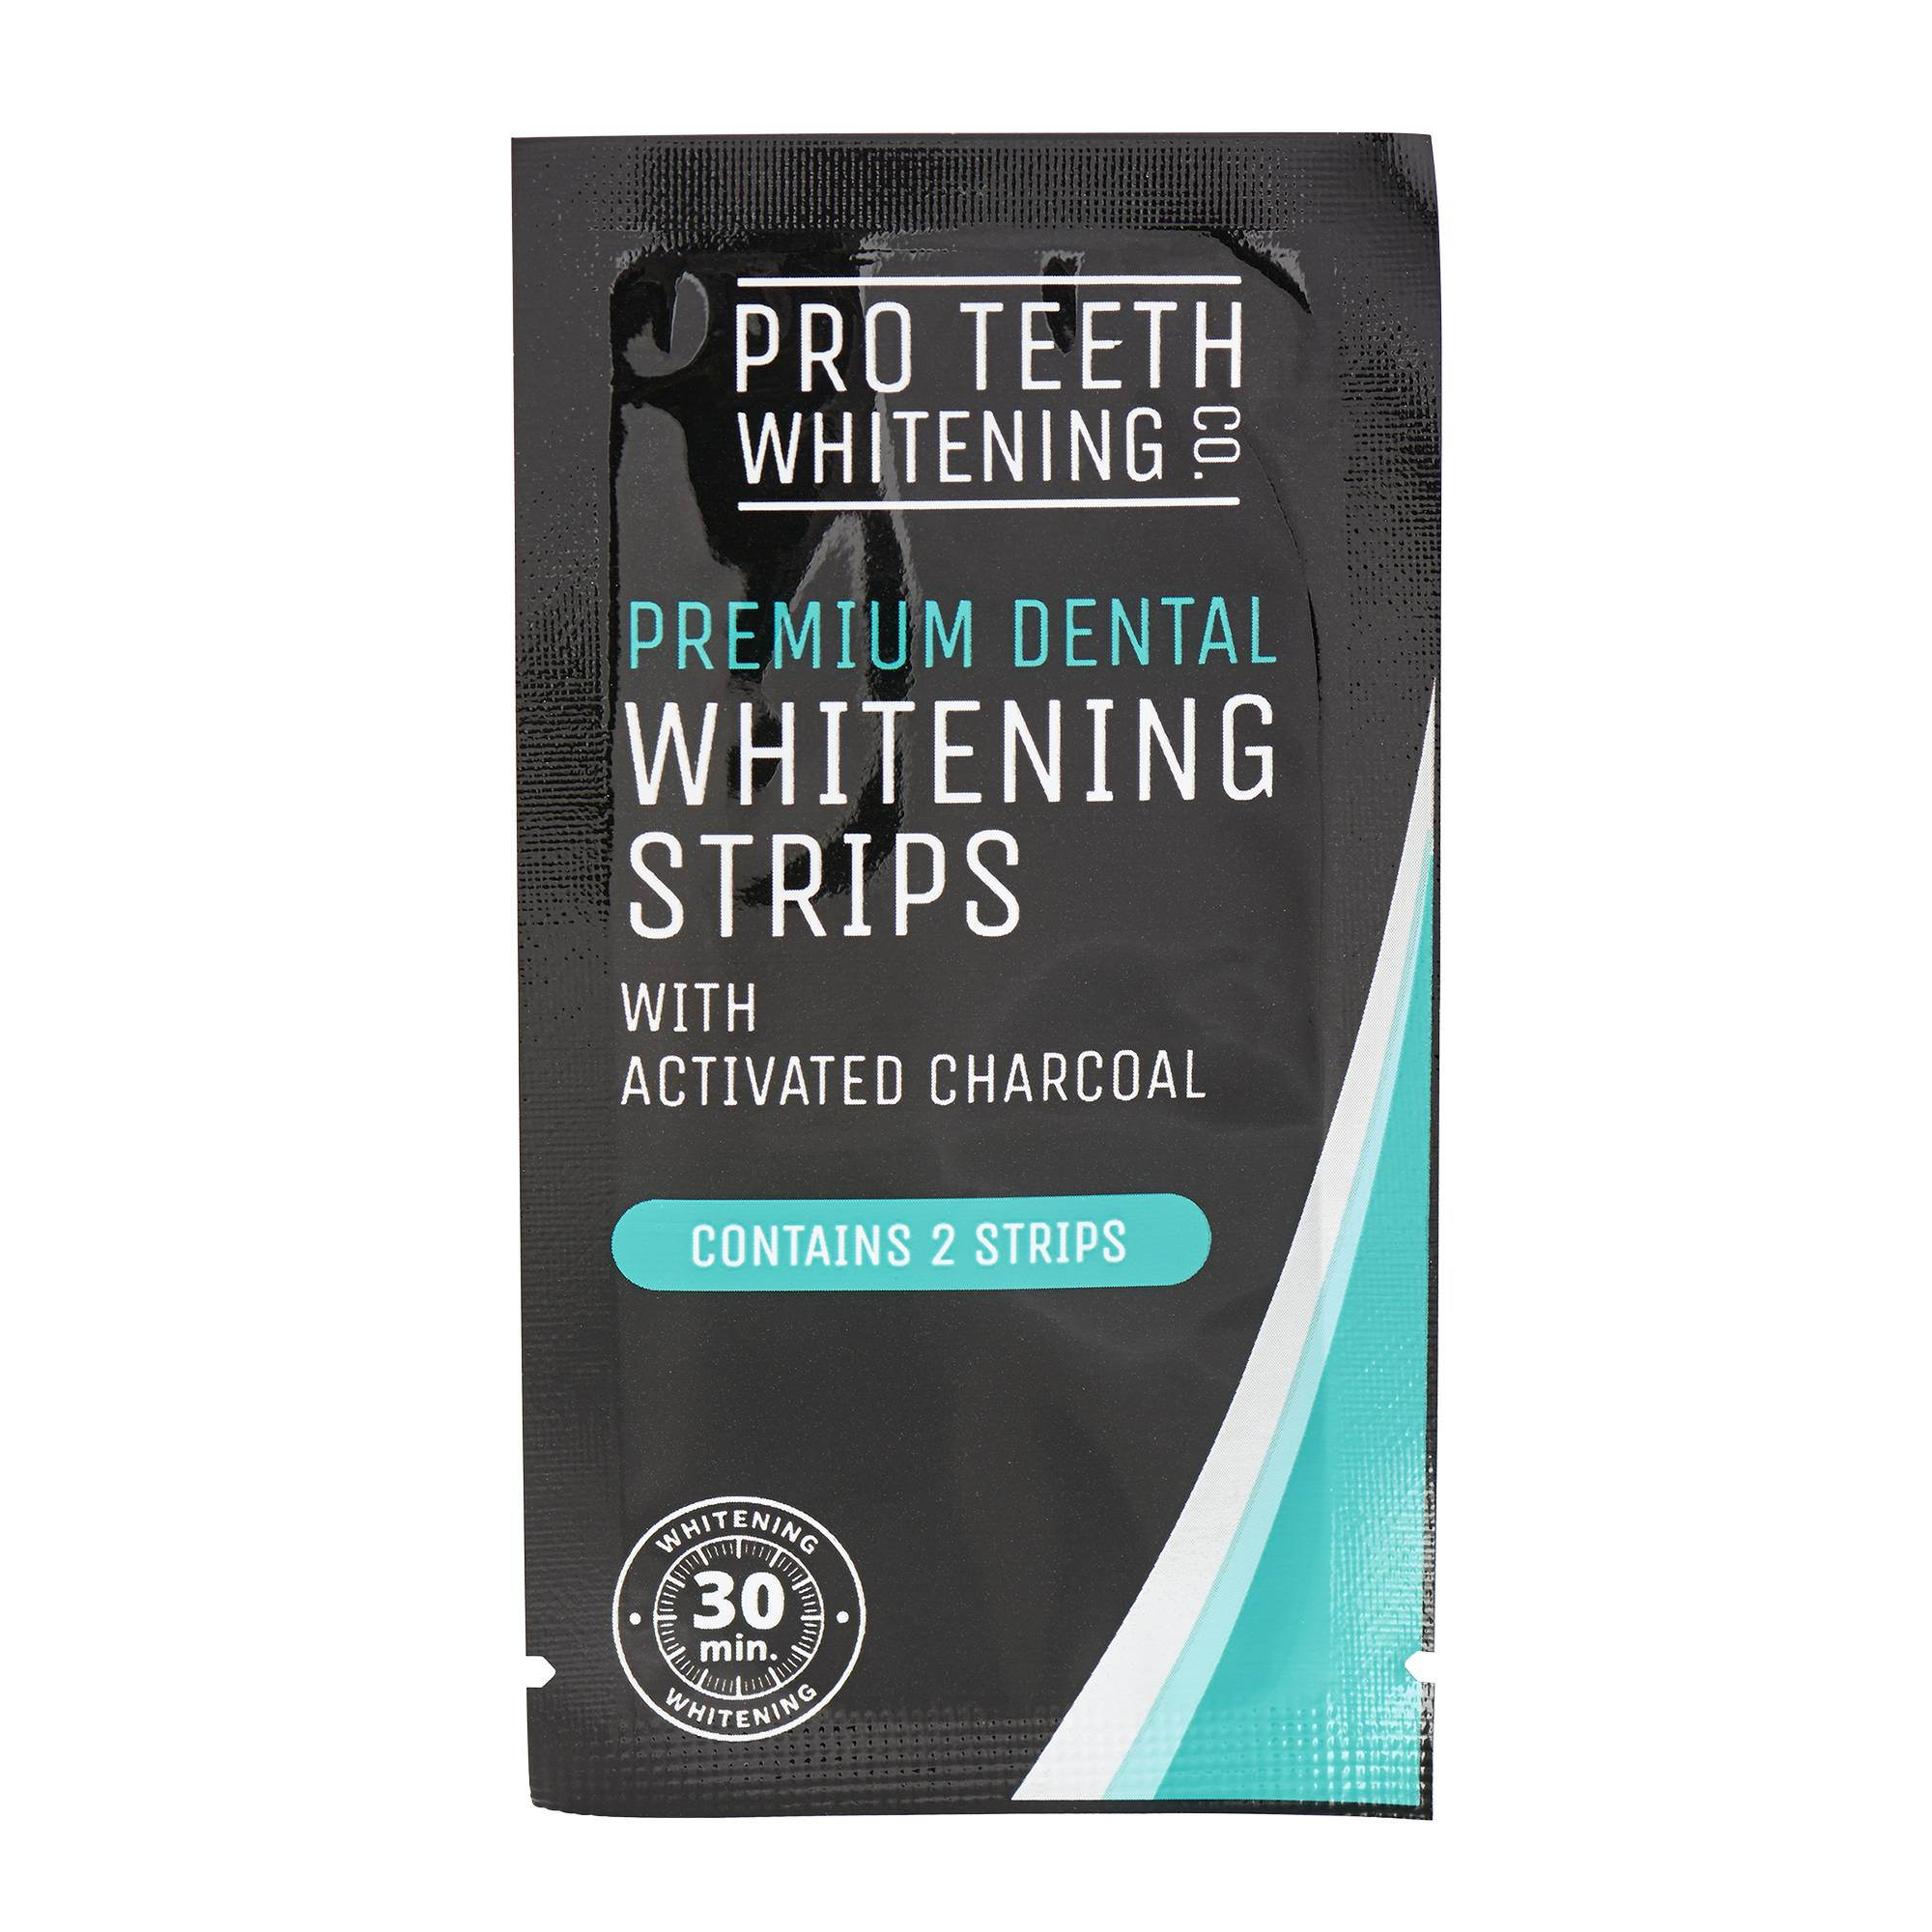 PRO TEETH WHITENING CO. Activated Charcoal Teeth Whitening Strips 30g